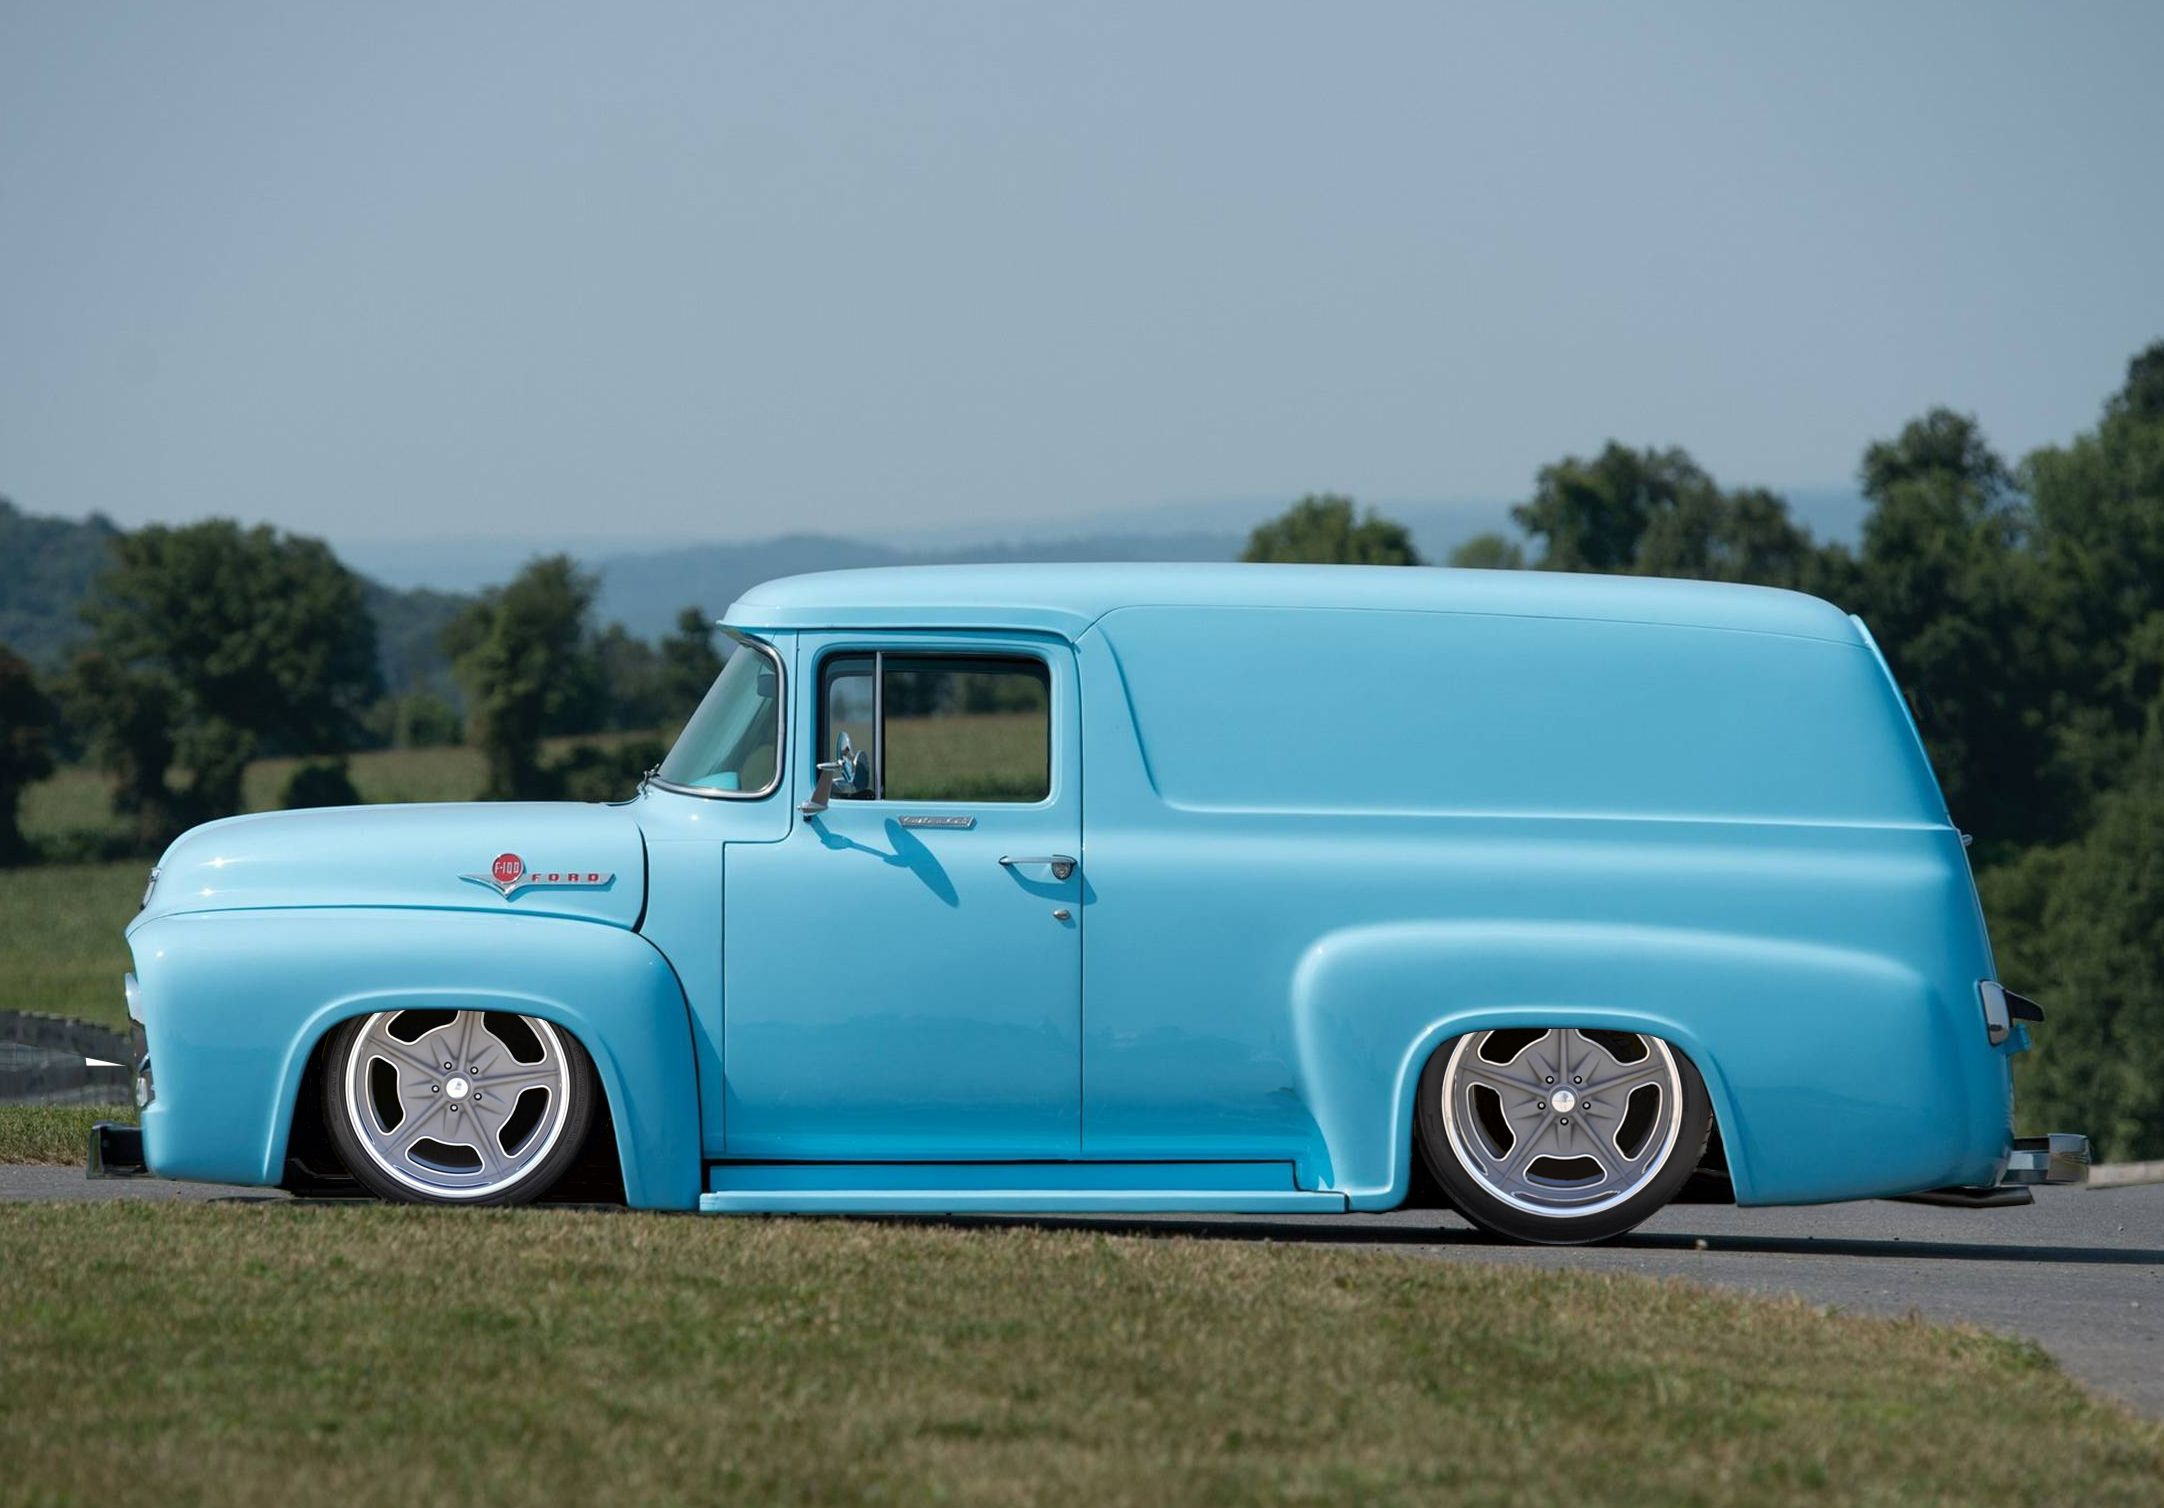 Rm Hershey 2014 Highlights 1956 Ford F 100 Panel Truck Cars 1955 F100